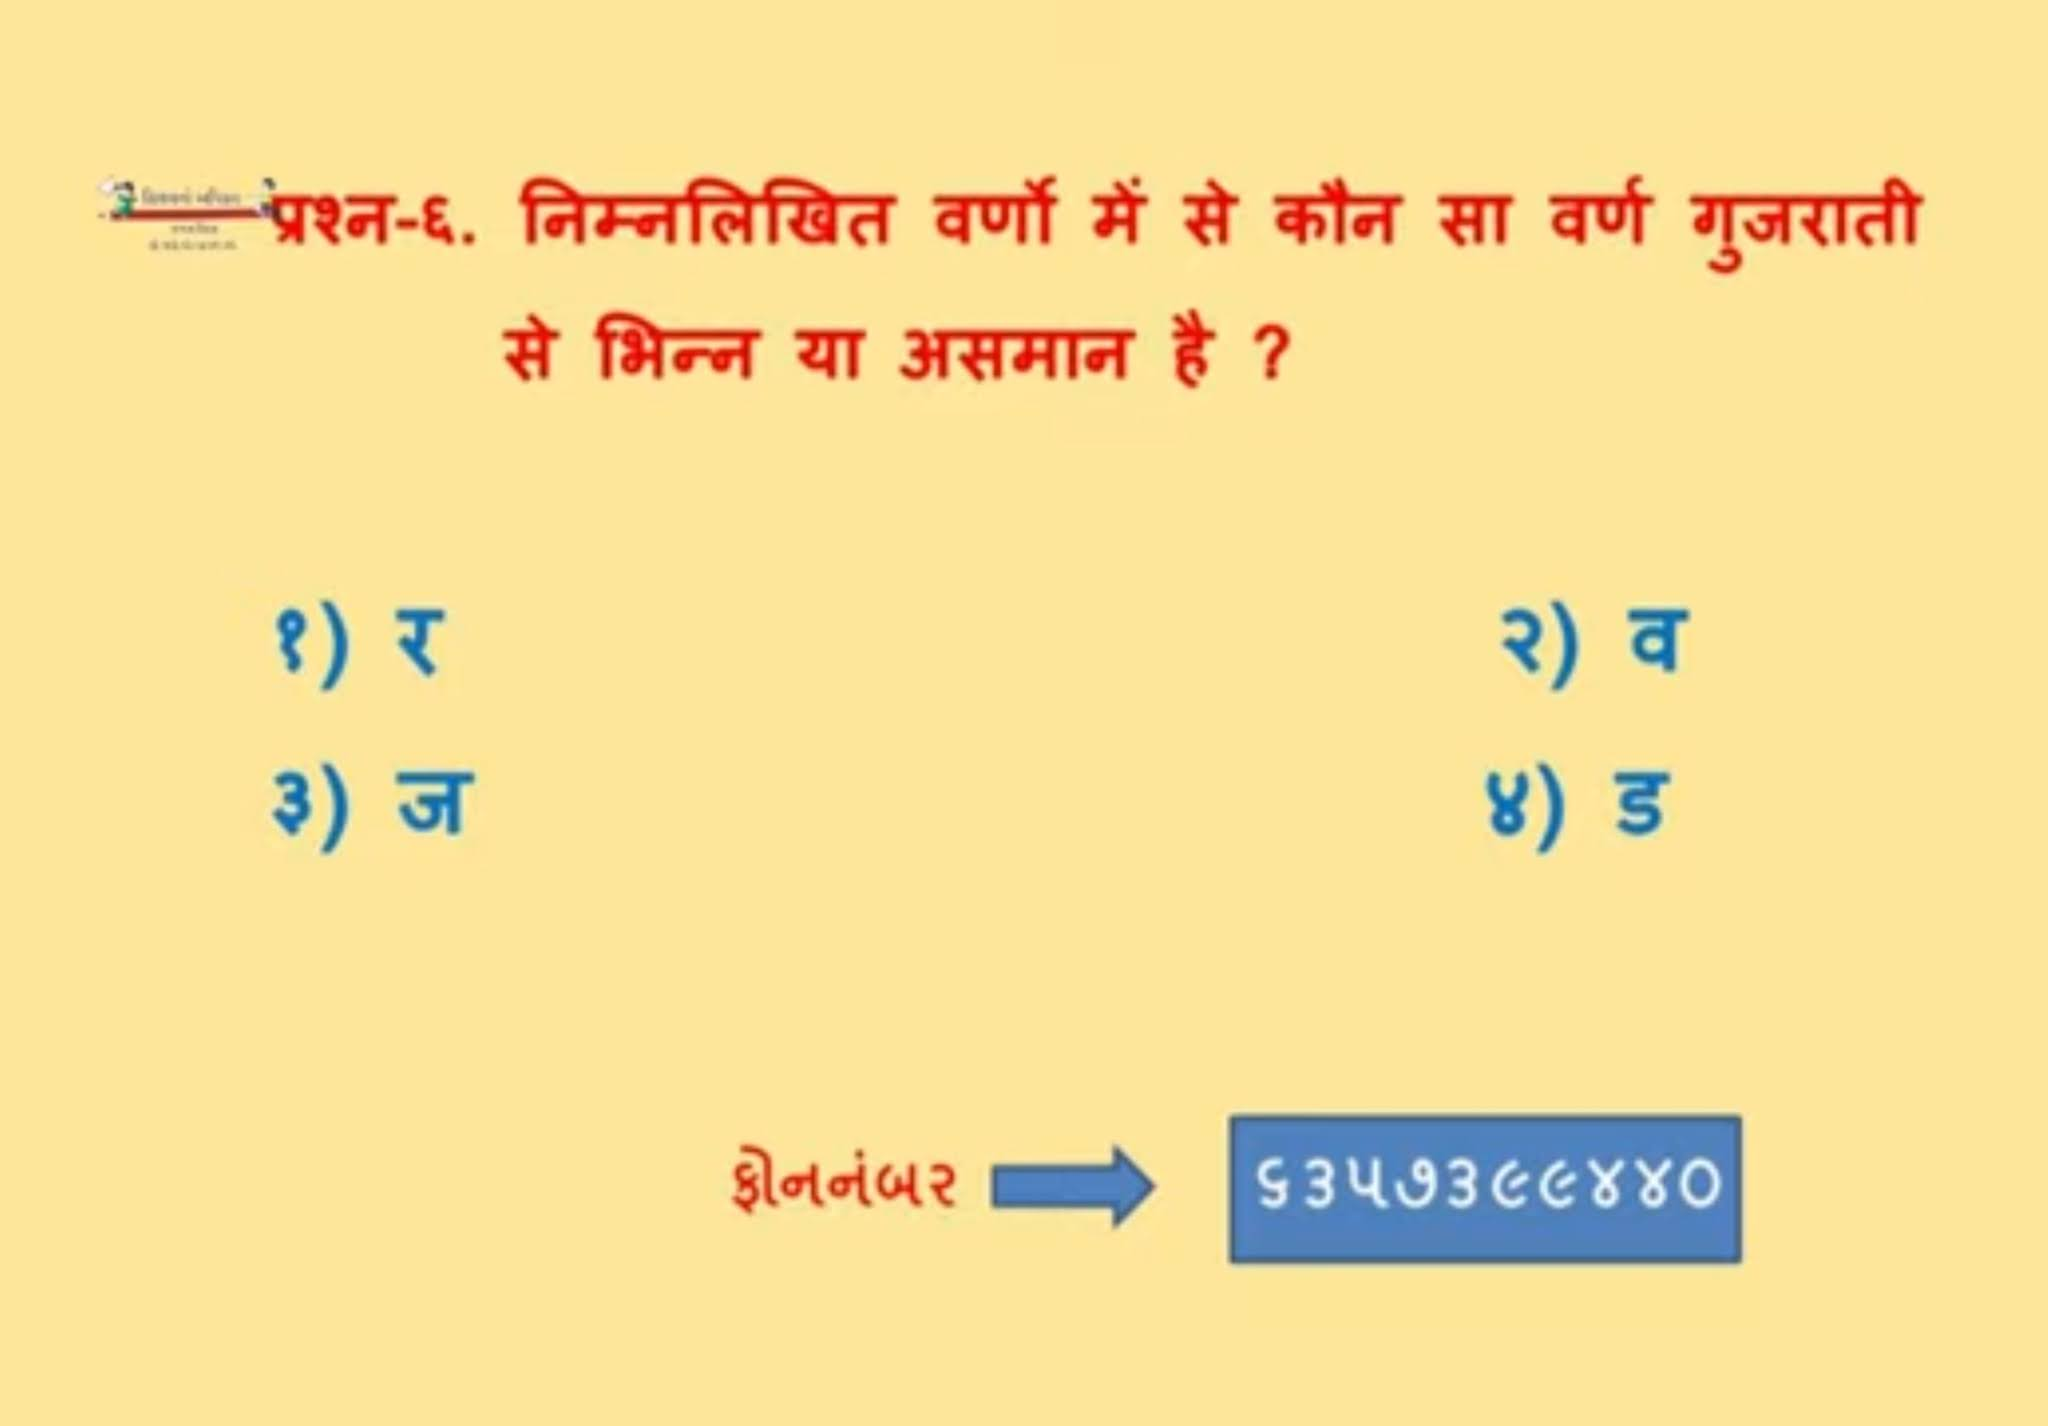 STD-3-4-5 DATE- 17-12-2020 HOME LEARNING QUESTIONS AND ANSWERS. GUJARAT JOB PORTAL